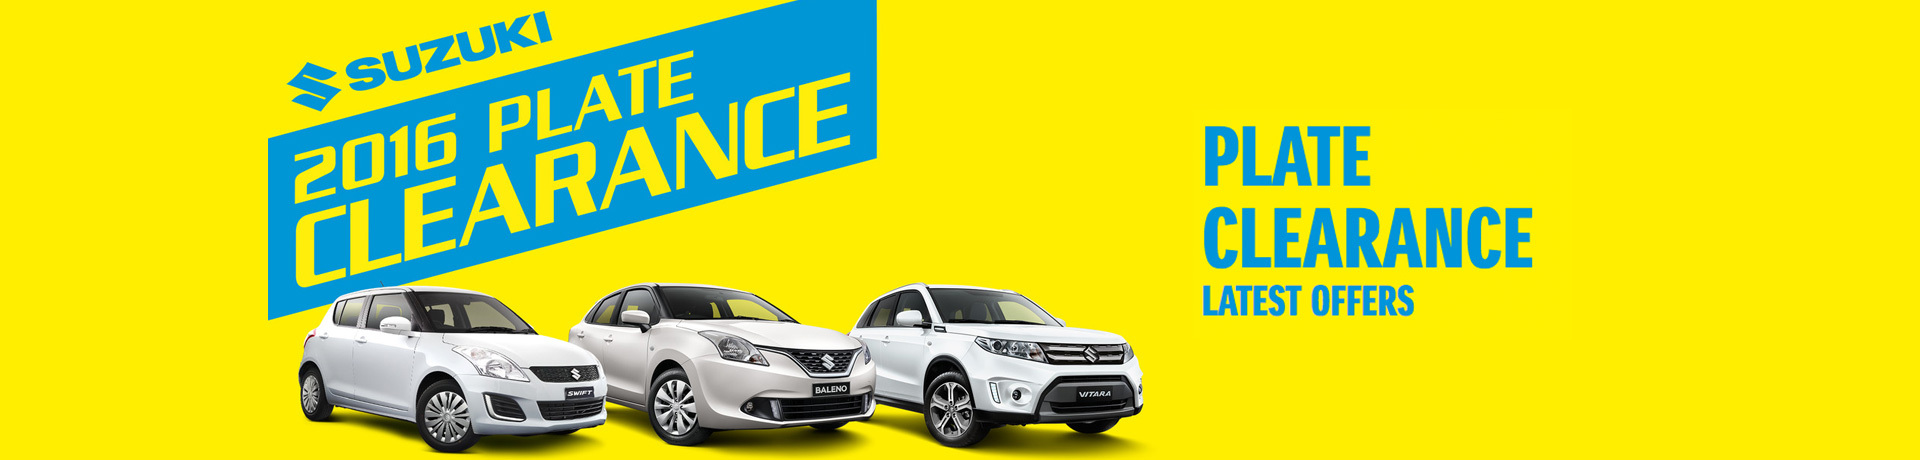 Suzuki - National Offer - 2016 Plate Clearance